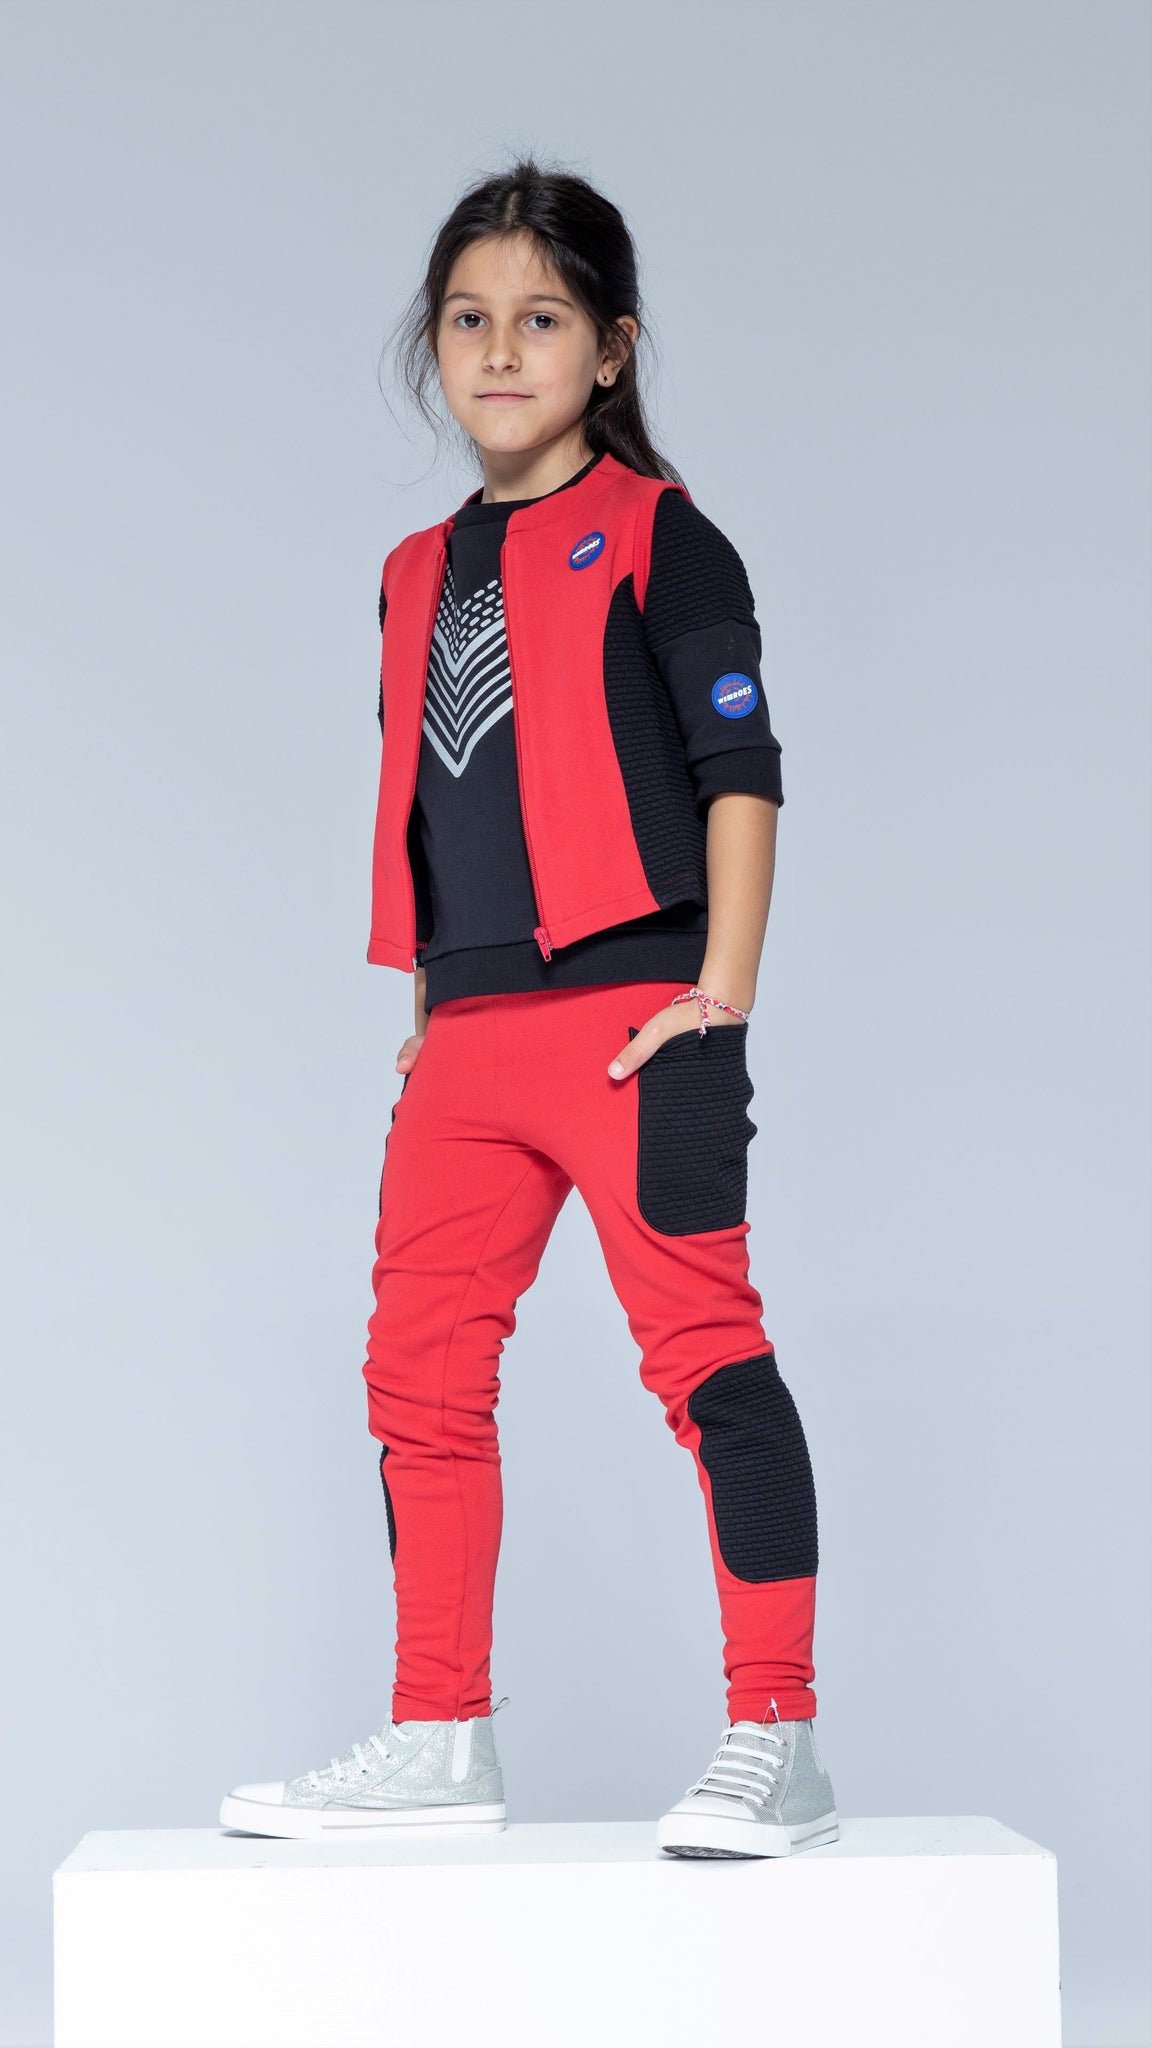 Sky Patroller Red and Black Vest